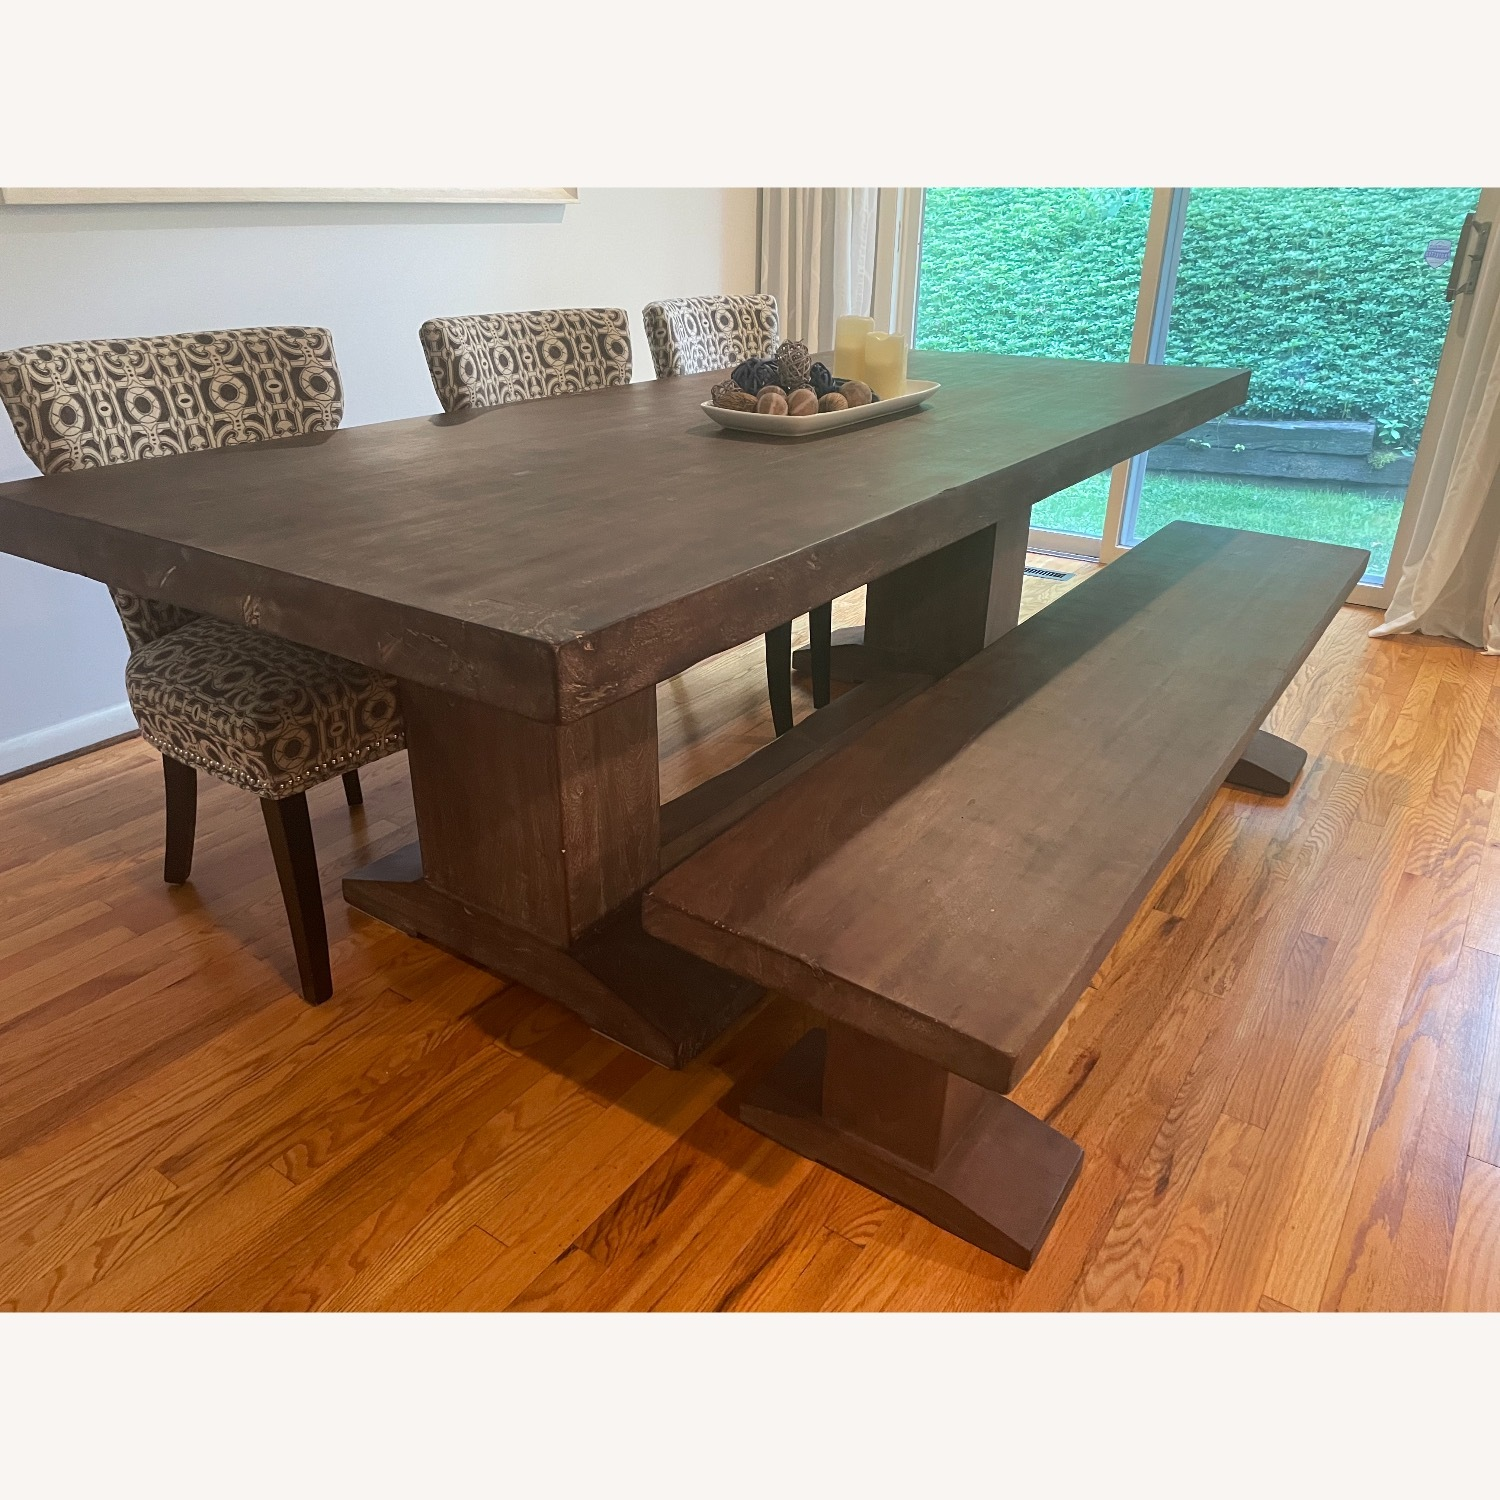 94-Inch Solid Acacia Wood Dining Table & Bench - image-3